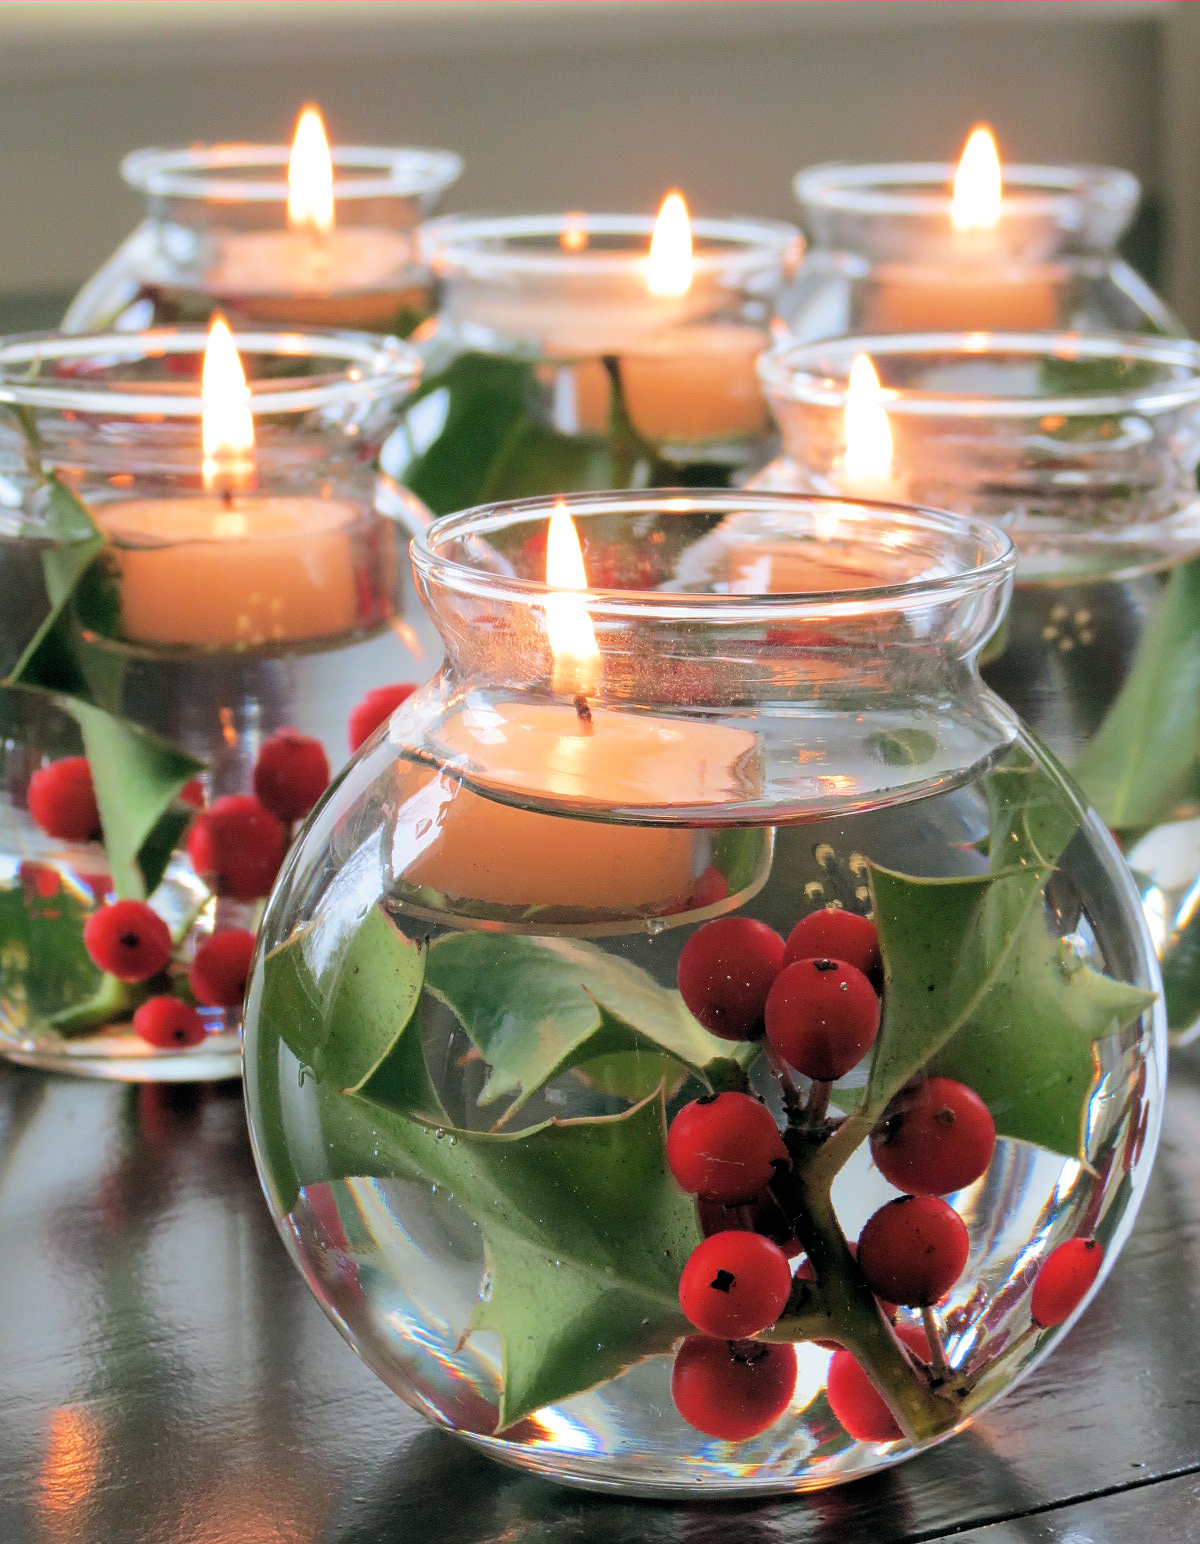 DIY Beautiful Floating Candles Thewowdecor